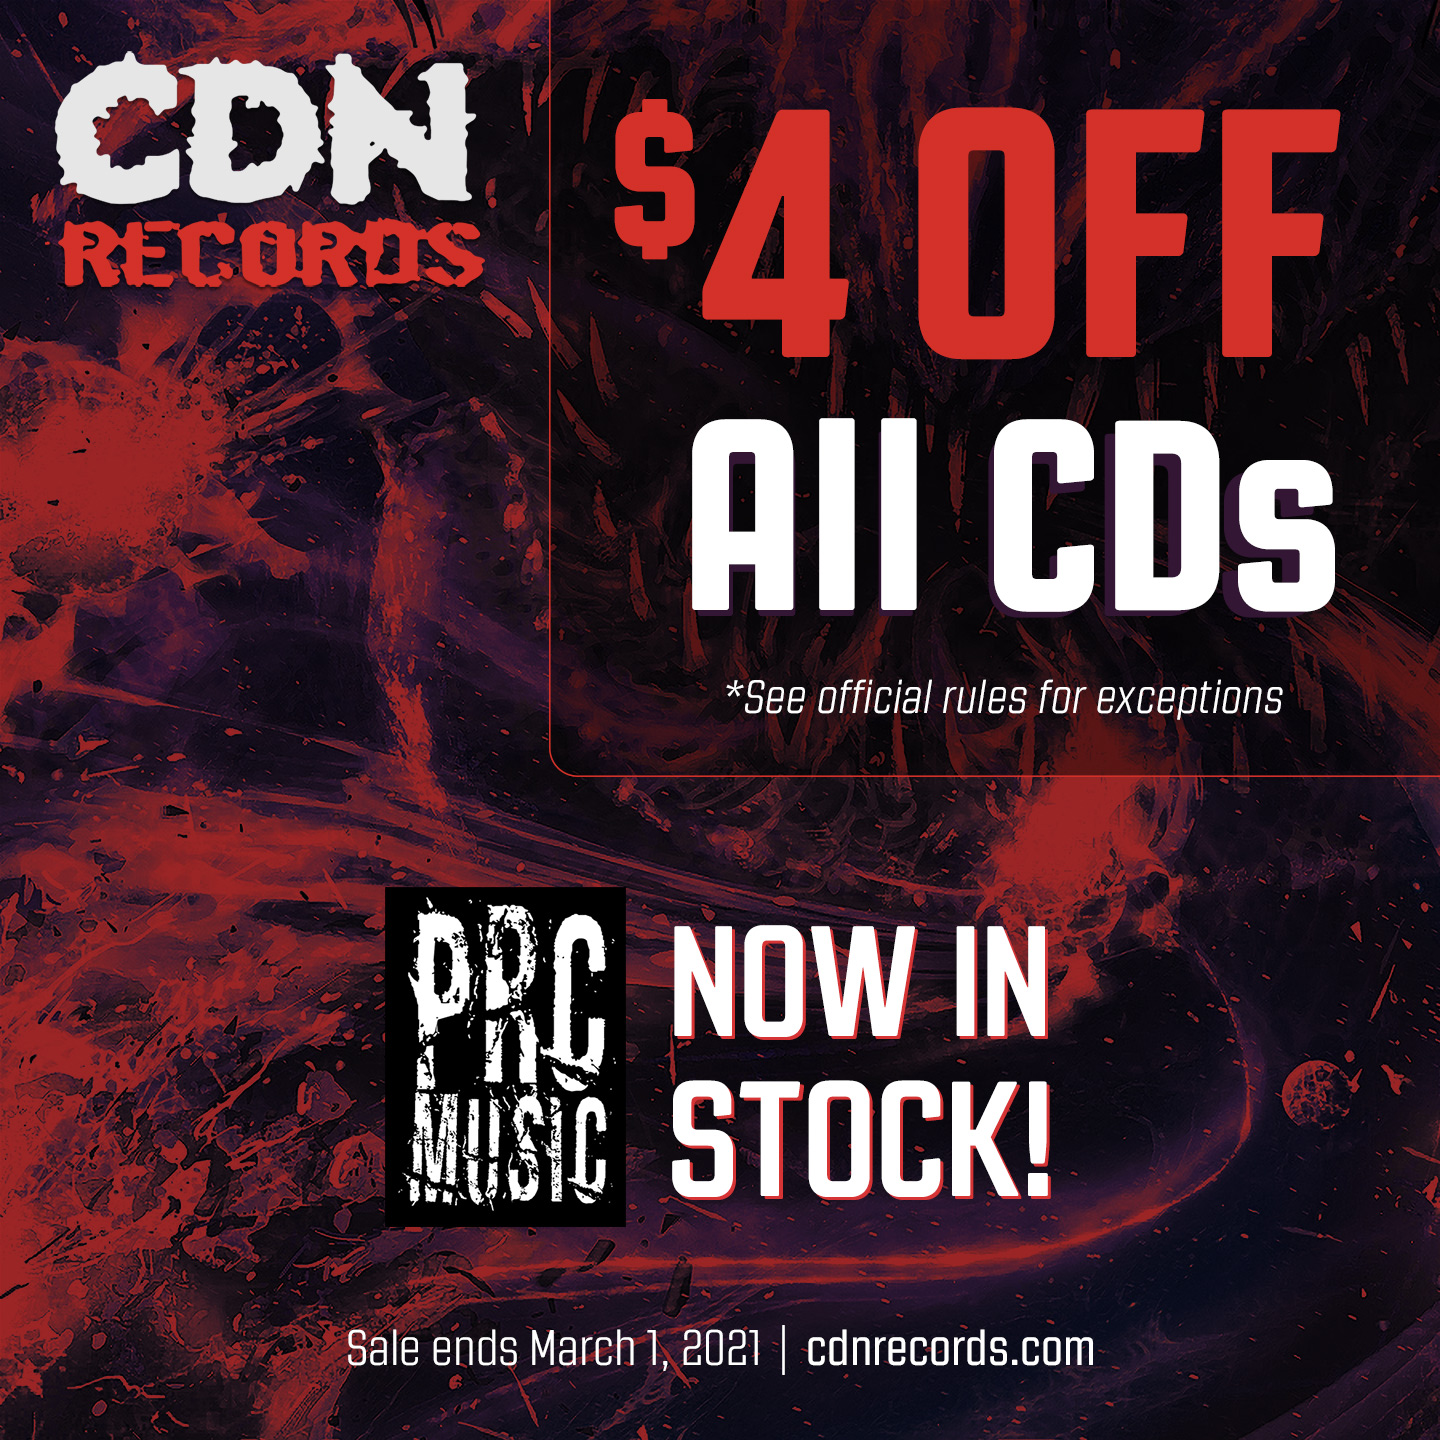 Promo graphic for $4 Off CDs in February